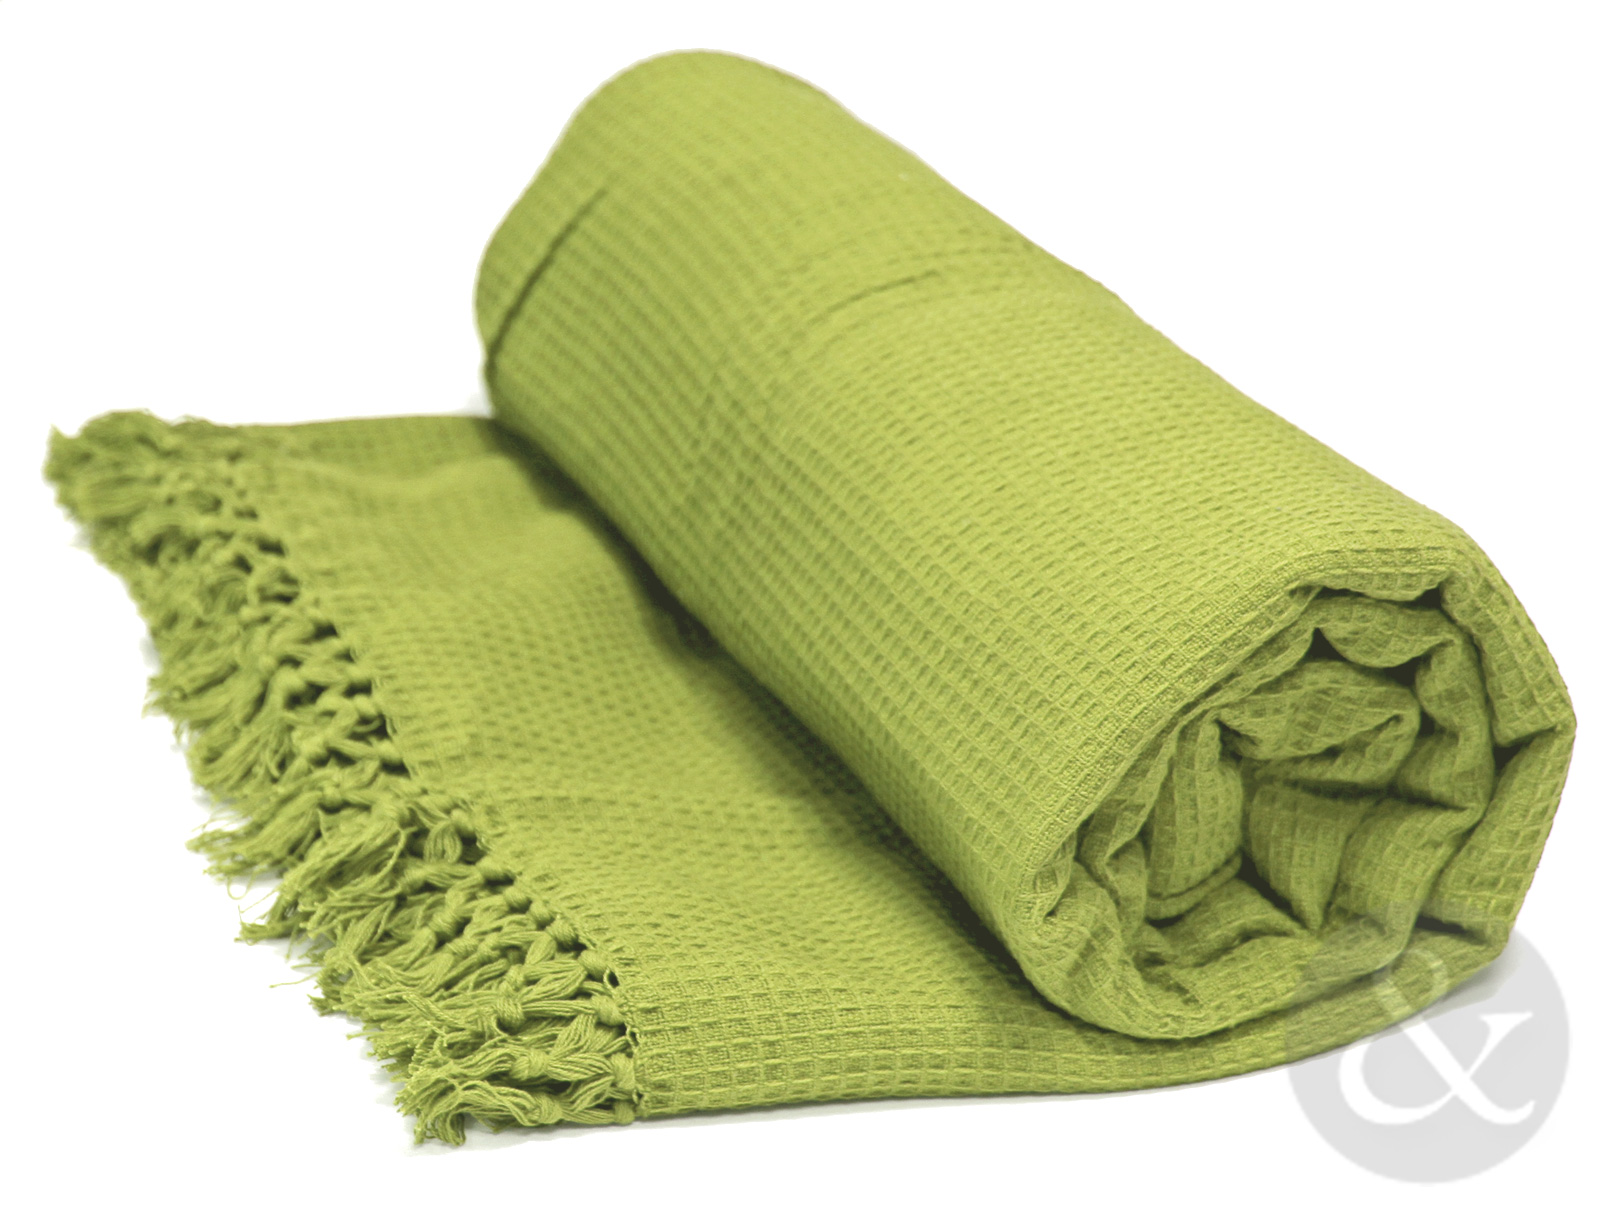 Soft 100 cotton honey comb throw with tasselled edge for Soft blankets and throws